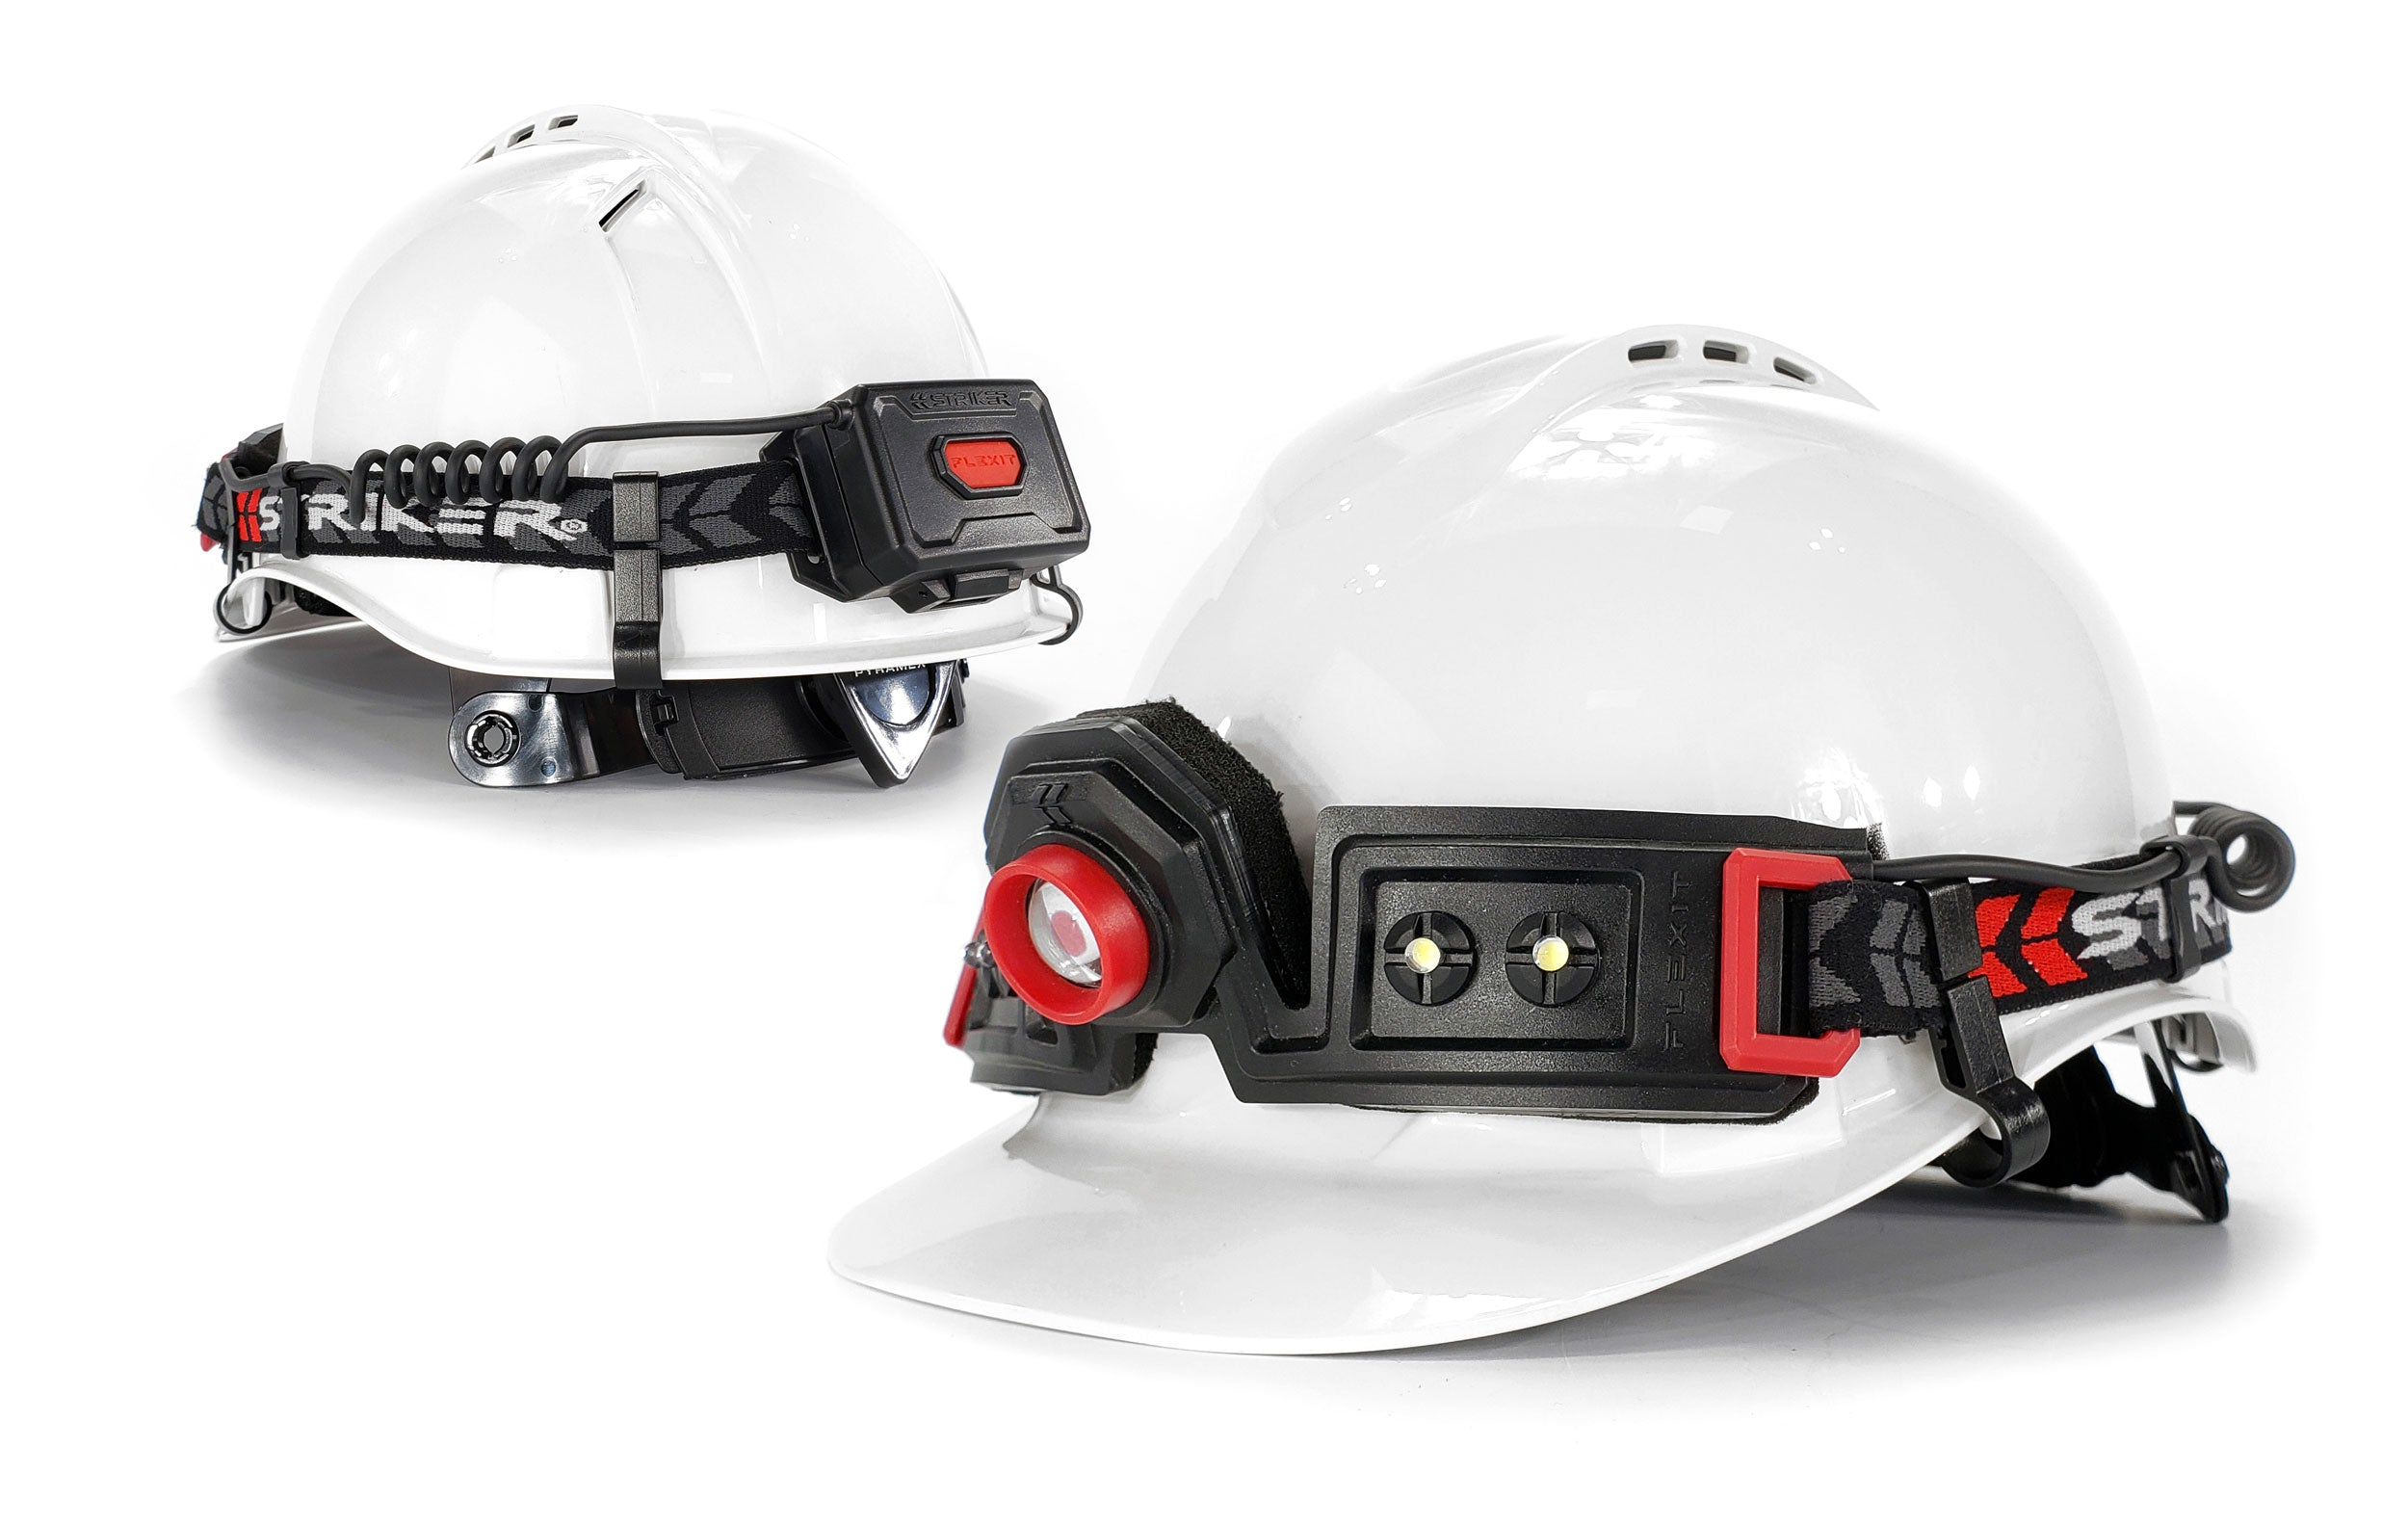 FLEXIT Headlamp 2.5 hard hat compatible